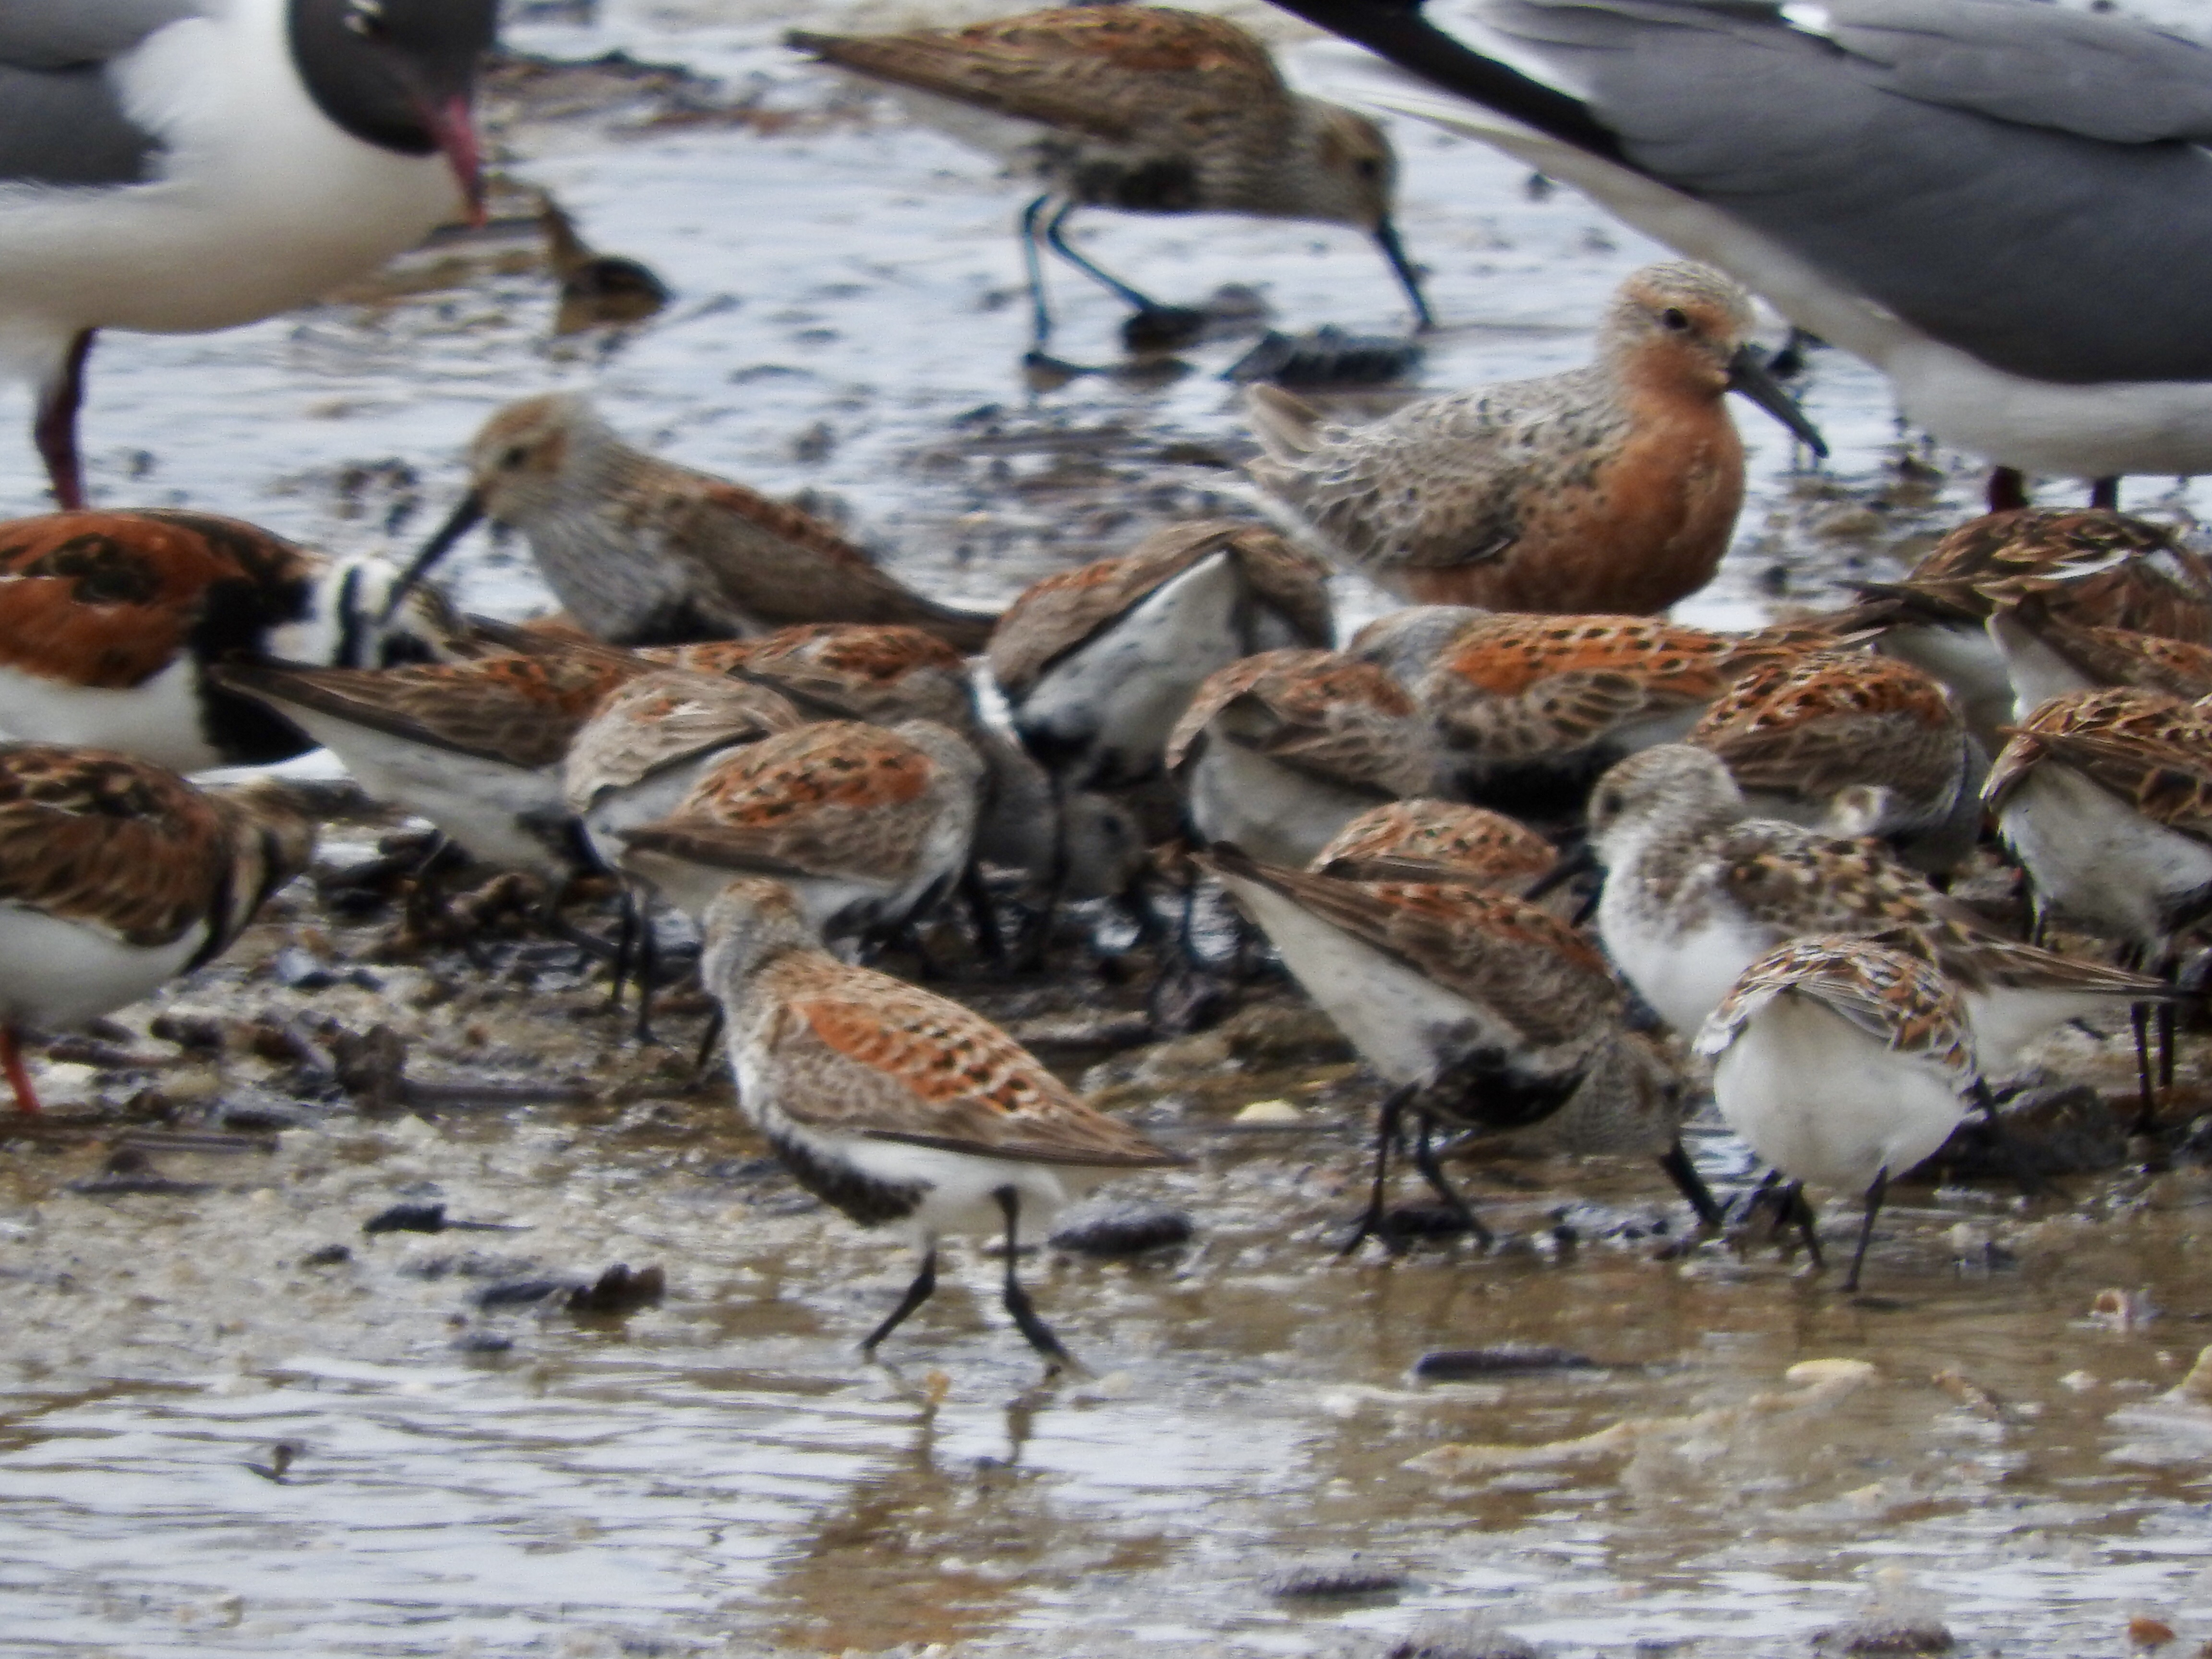 Red Knot, Ruddy Turnstone, Dunlins, Laughing Gulls, sandpipers